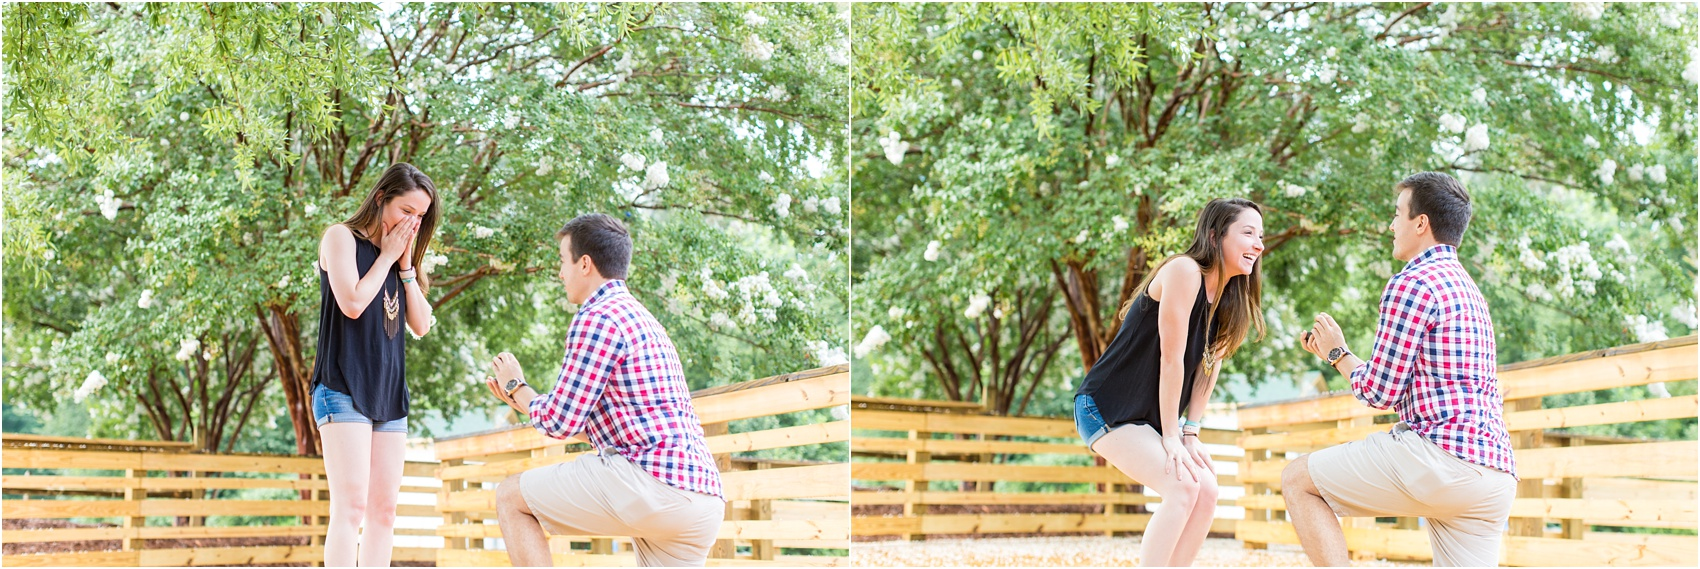 Paige and Creigh- Proposal-5.jpg